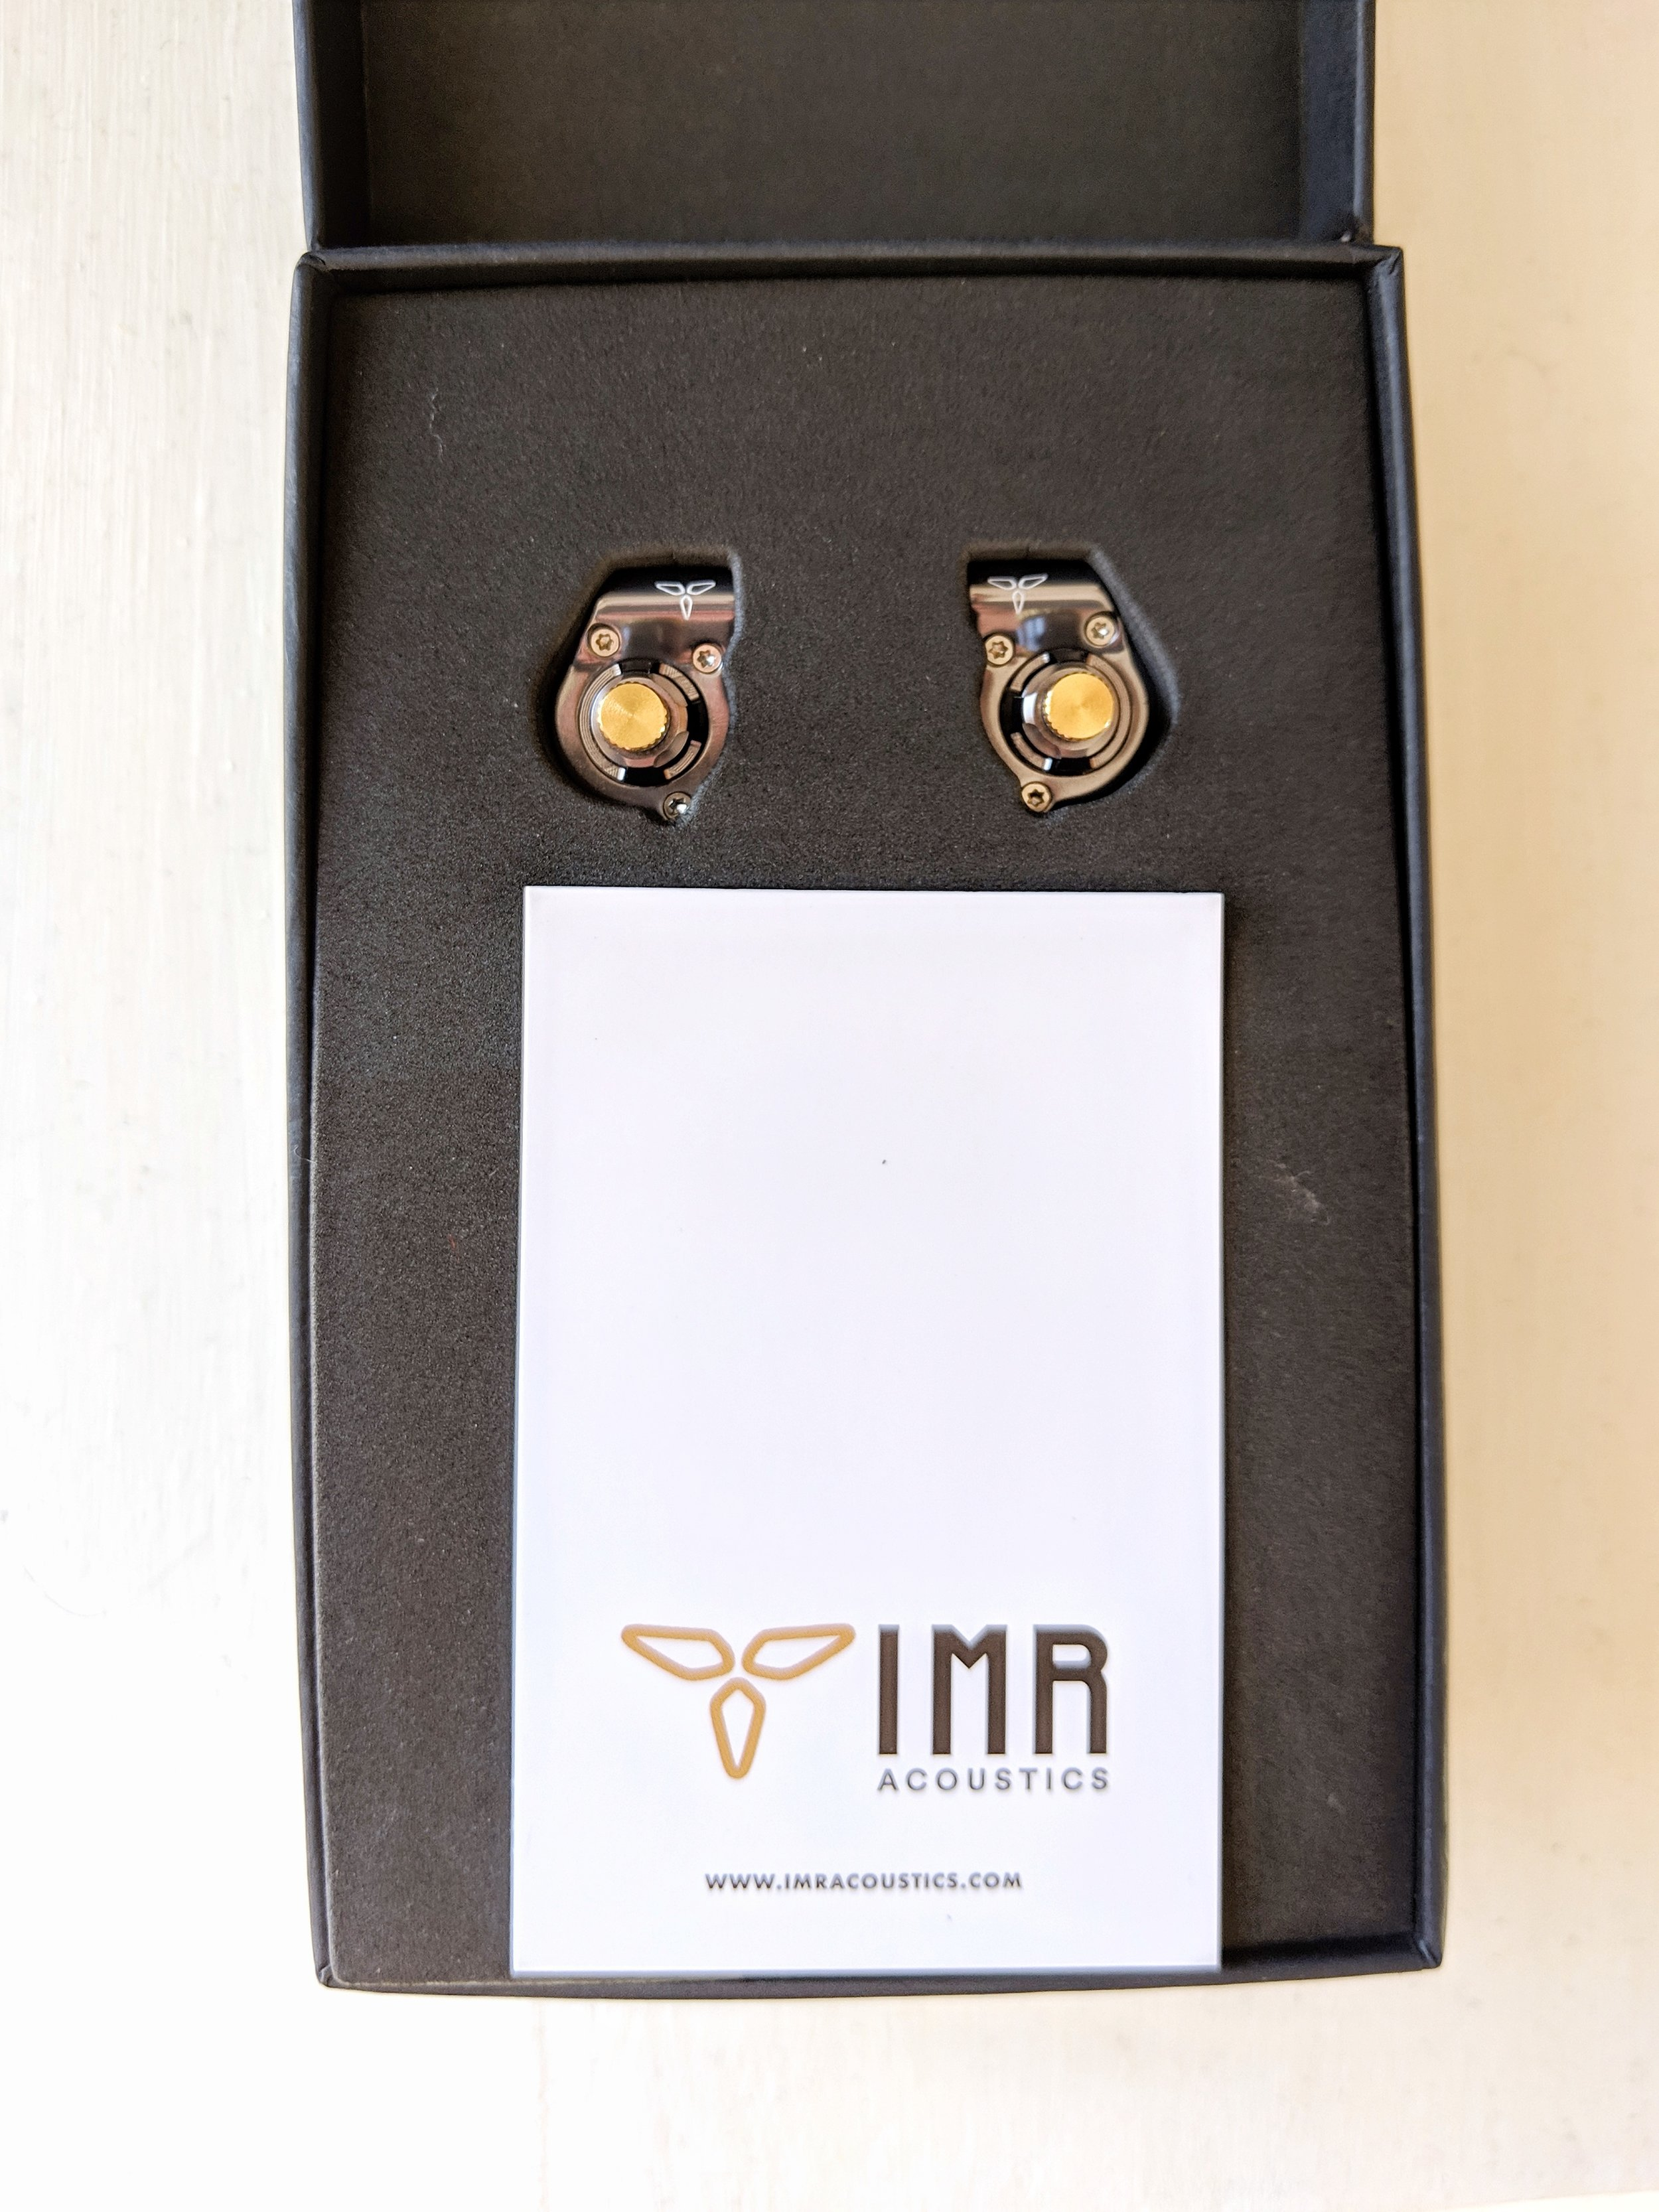 IMR R1 Zenith review box and accessories for audiophile earphones.